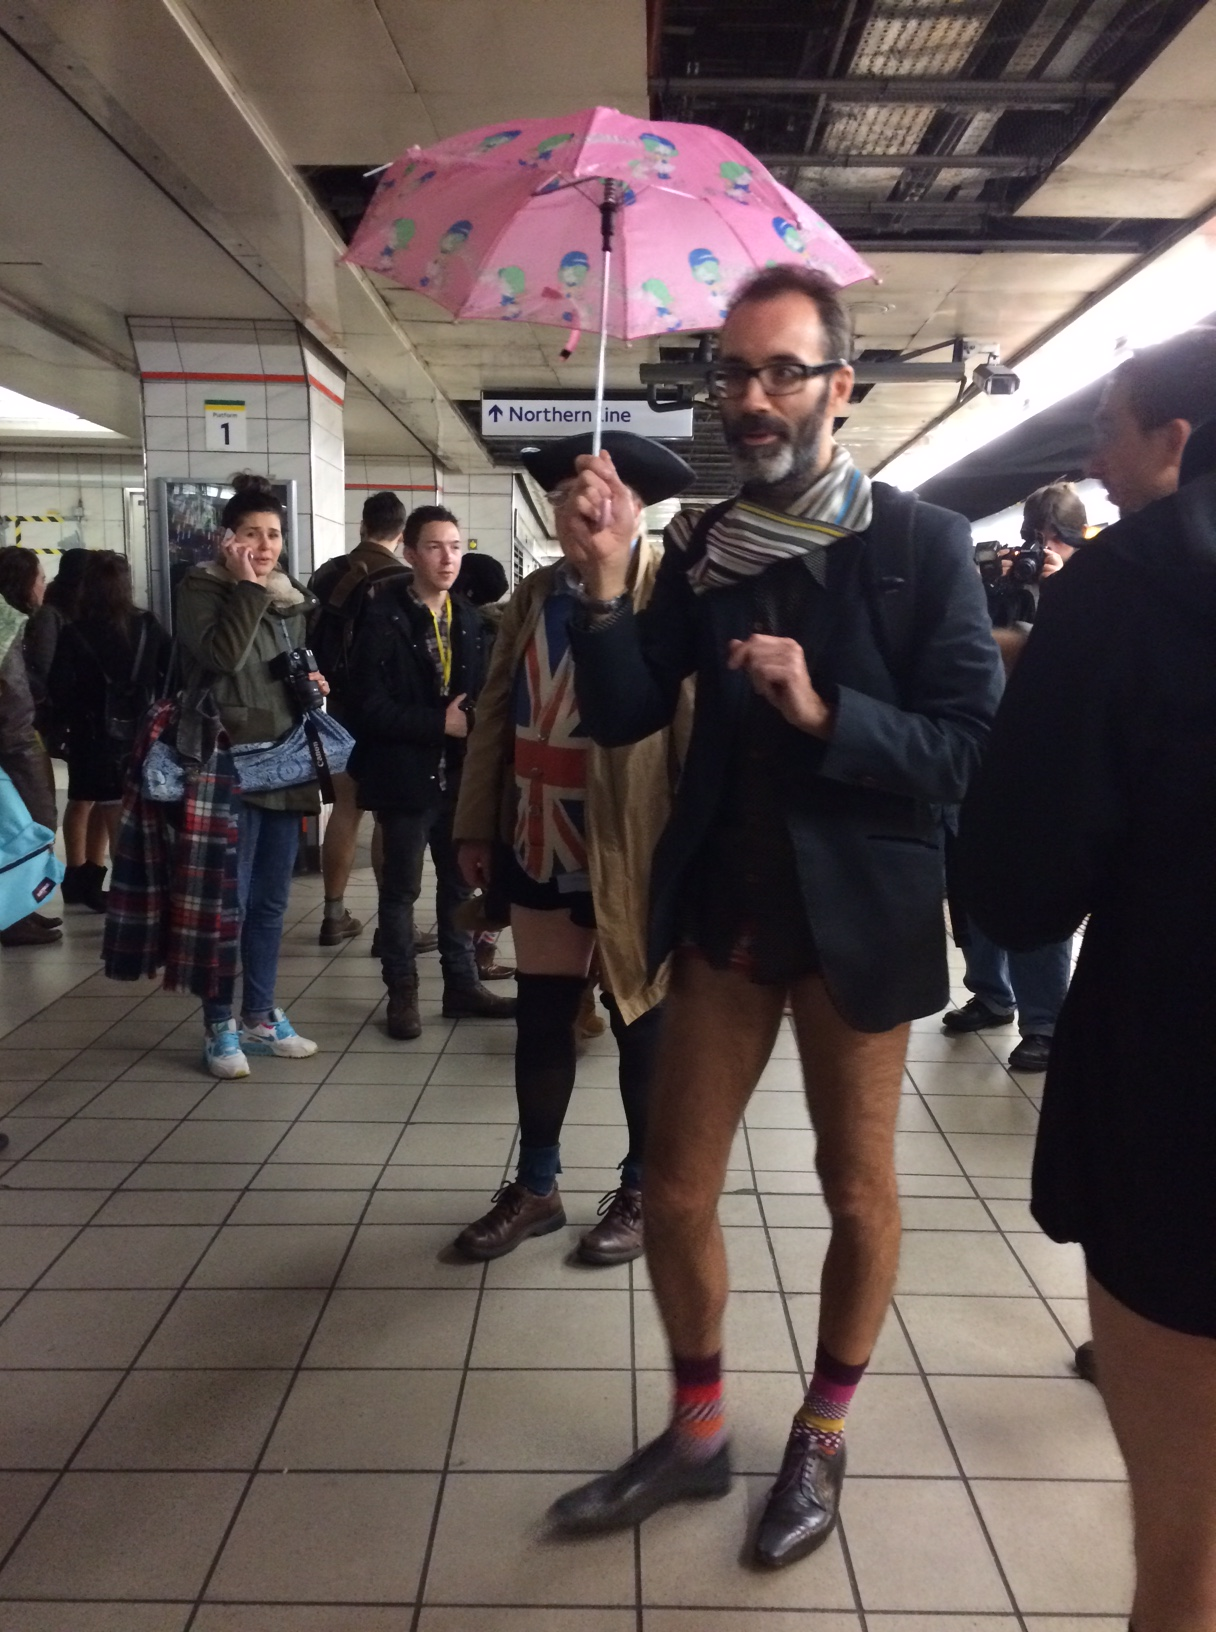 Metro strips off with hundreds of Londoners for the No Trousers Tube Ride event